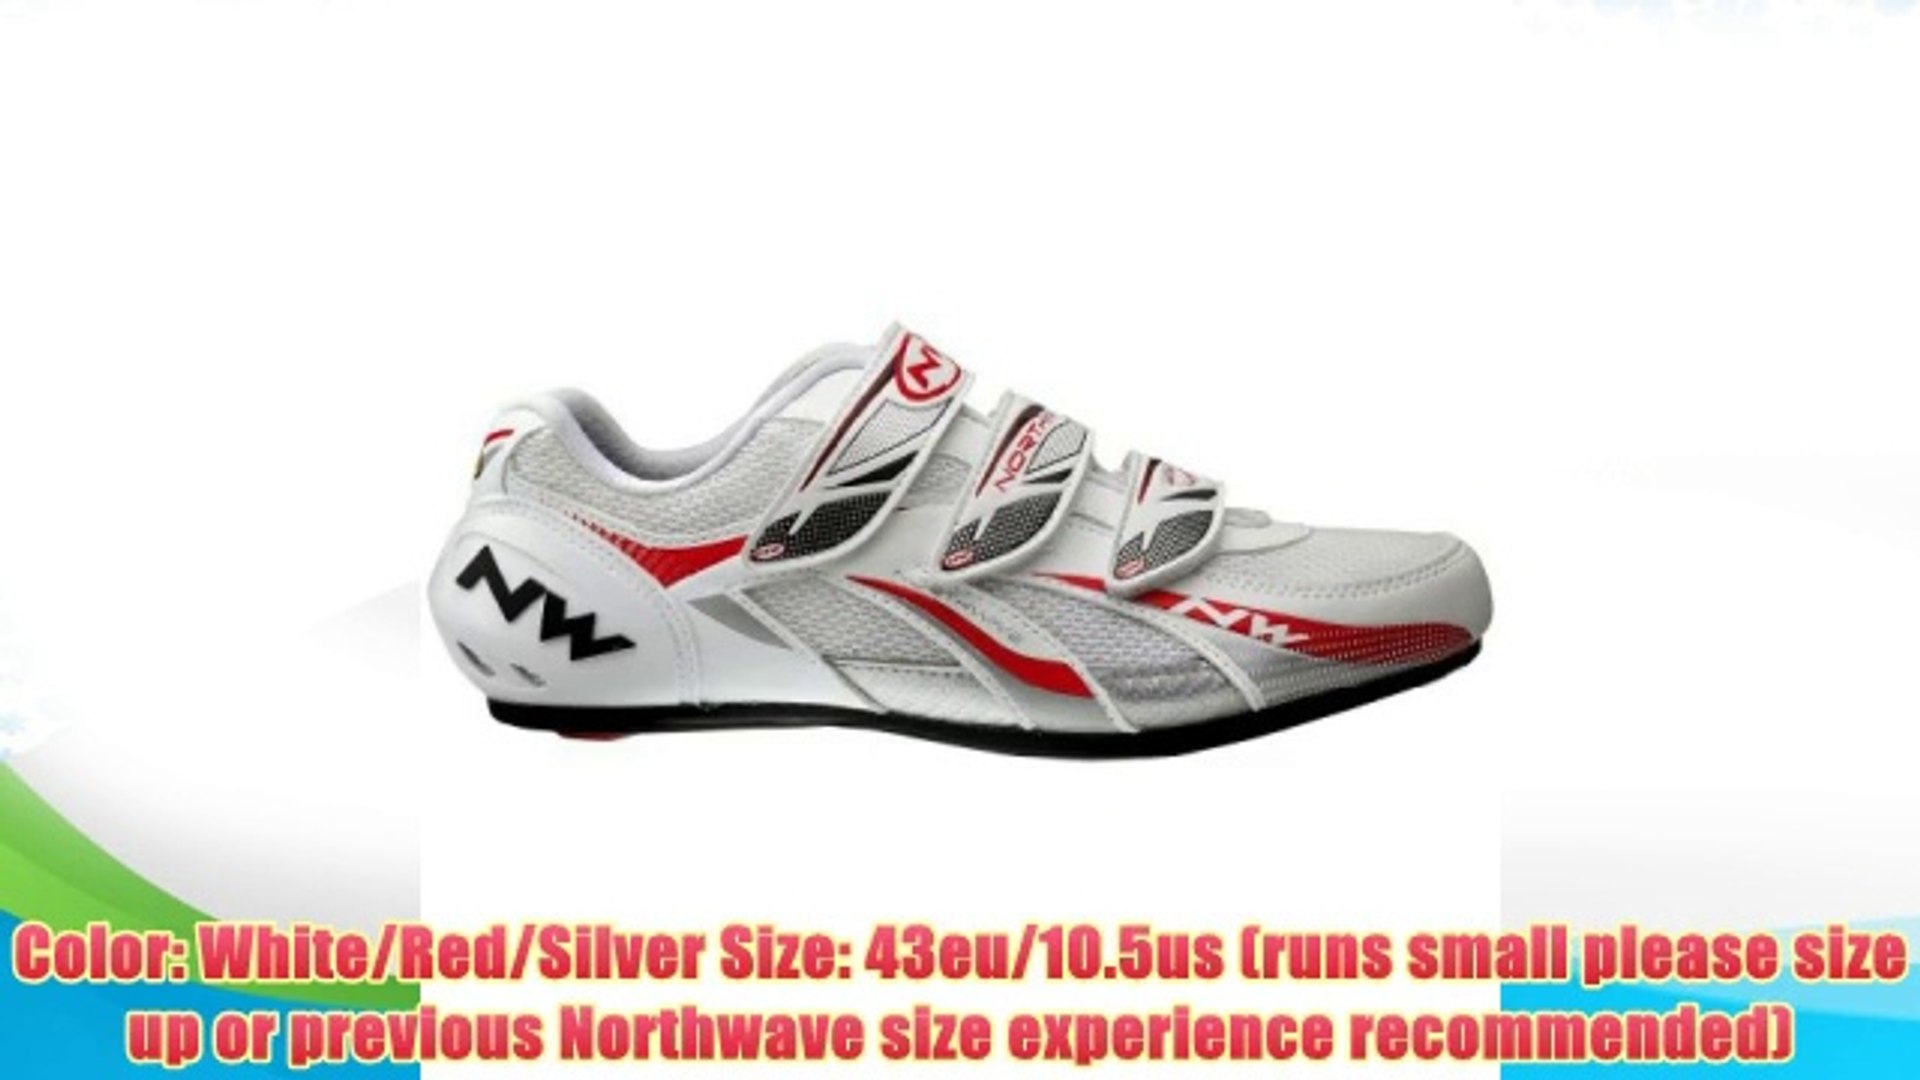 Best buy Northwave Fighter Cycling Shoes Mens Road White/Red/Silver 43eu 10.5us,